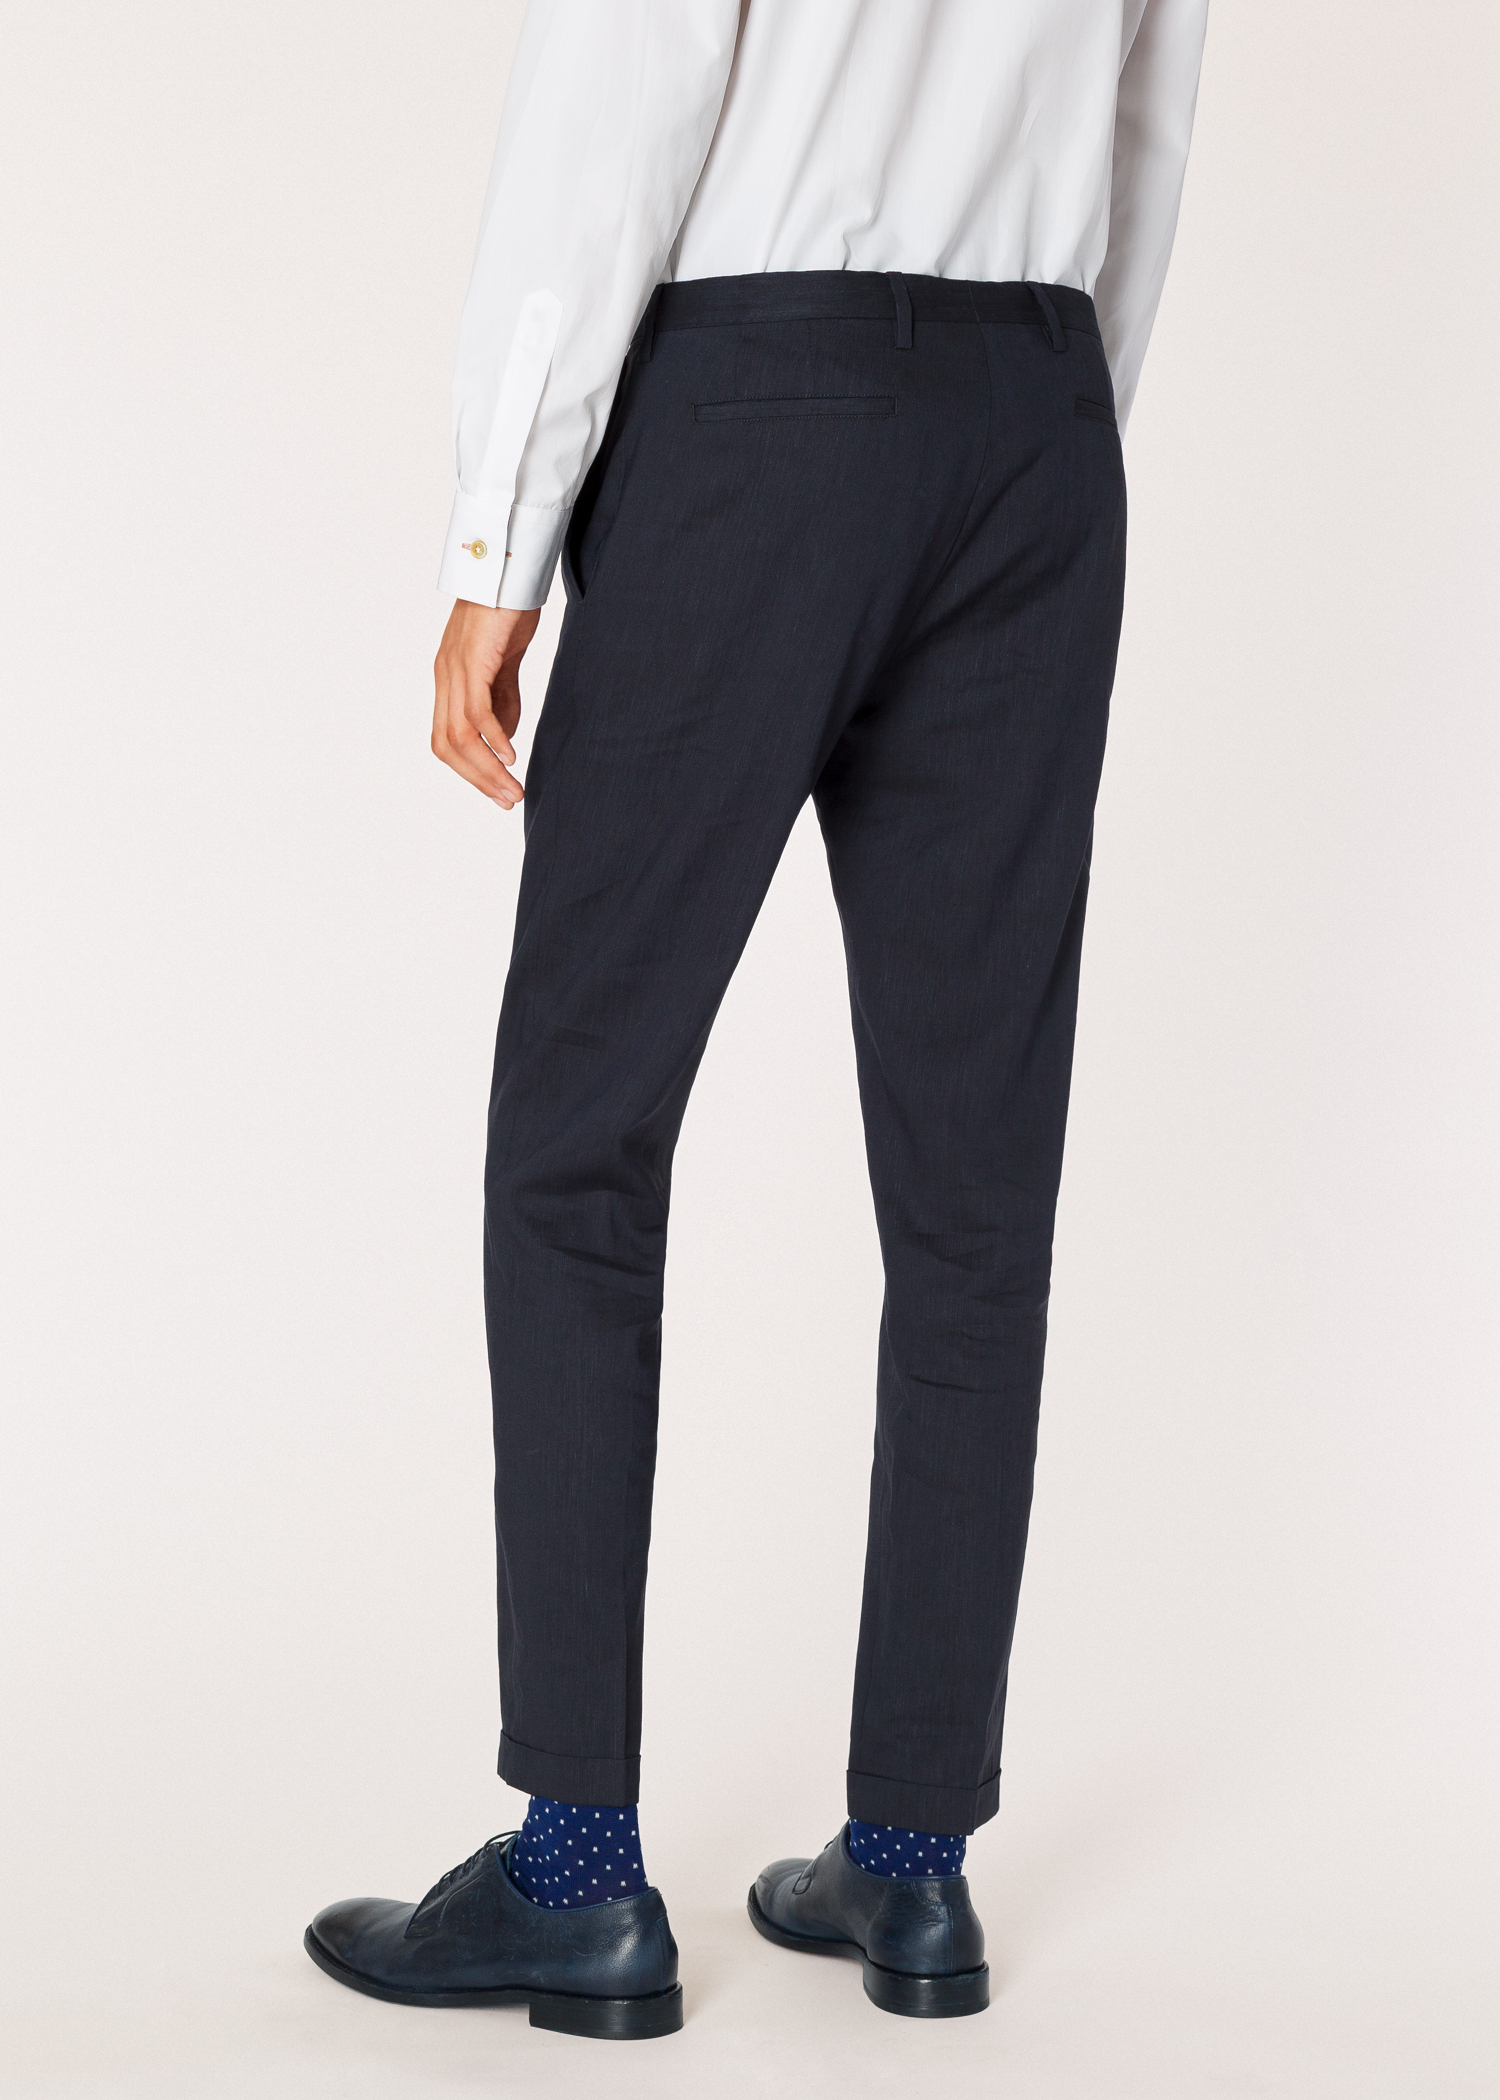 7556ca7cc6 Model back close up - Men's Slim-Fit Dark Navy Marl Wool And Linen Trousers